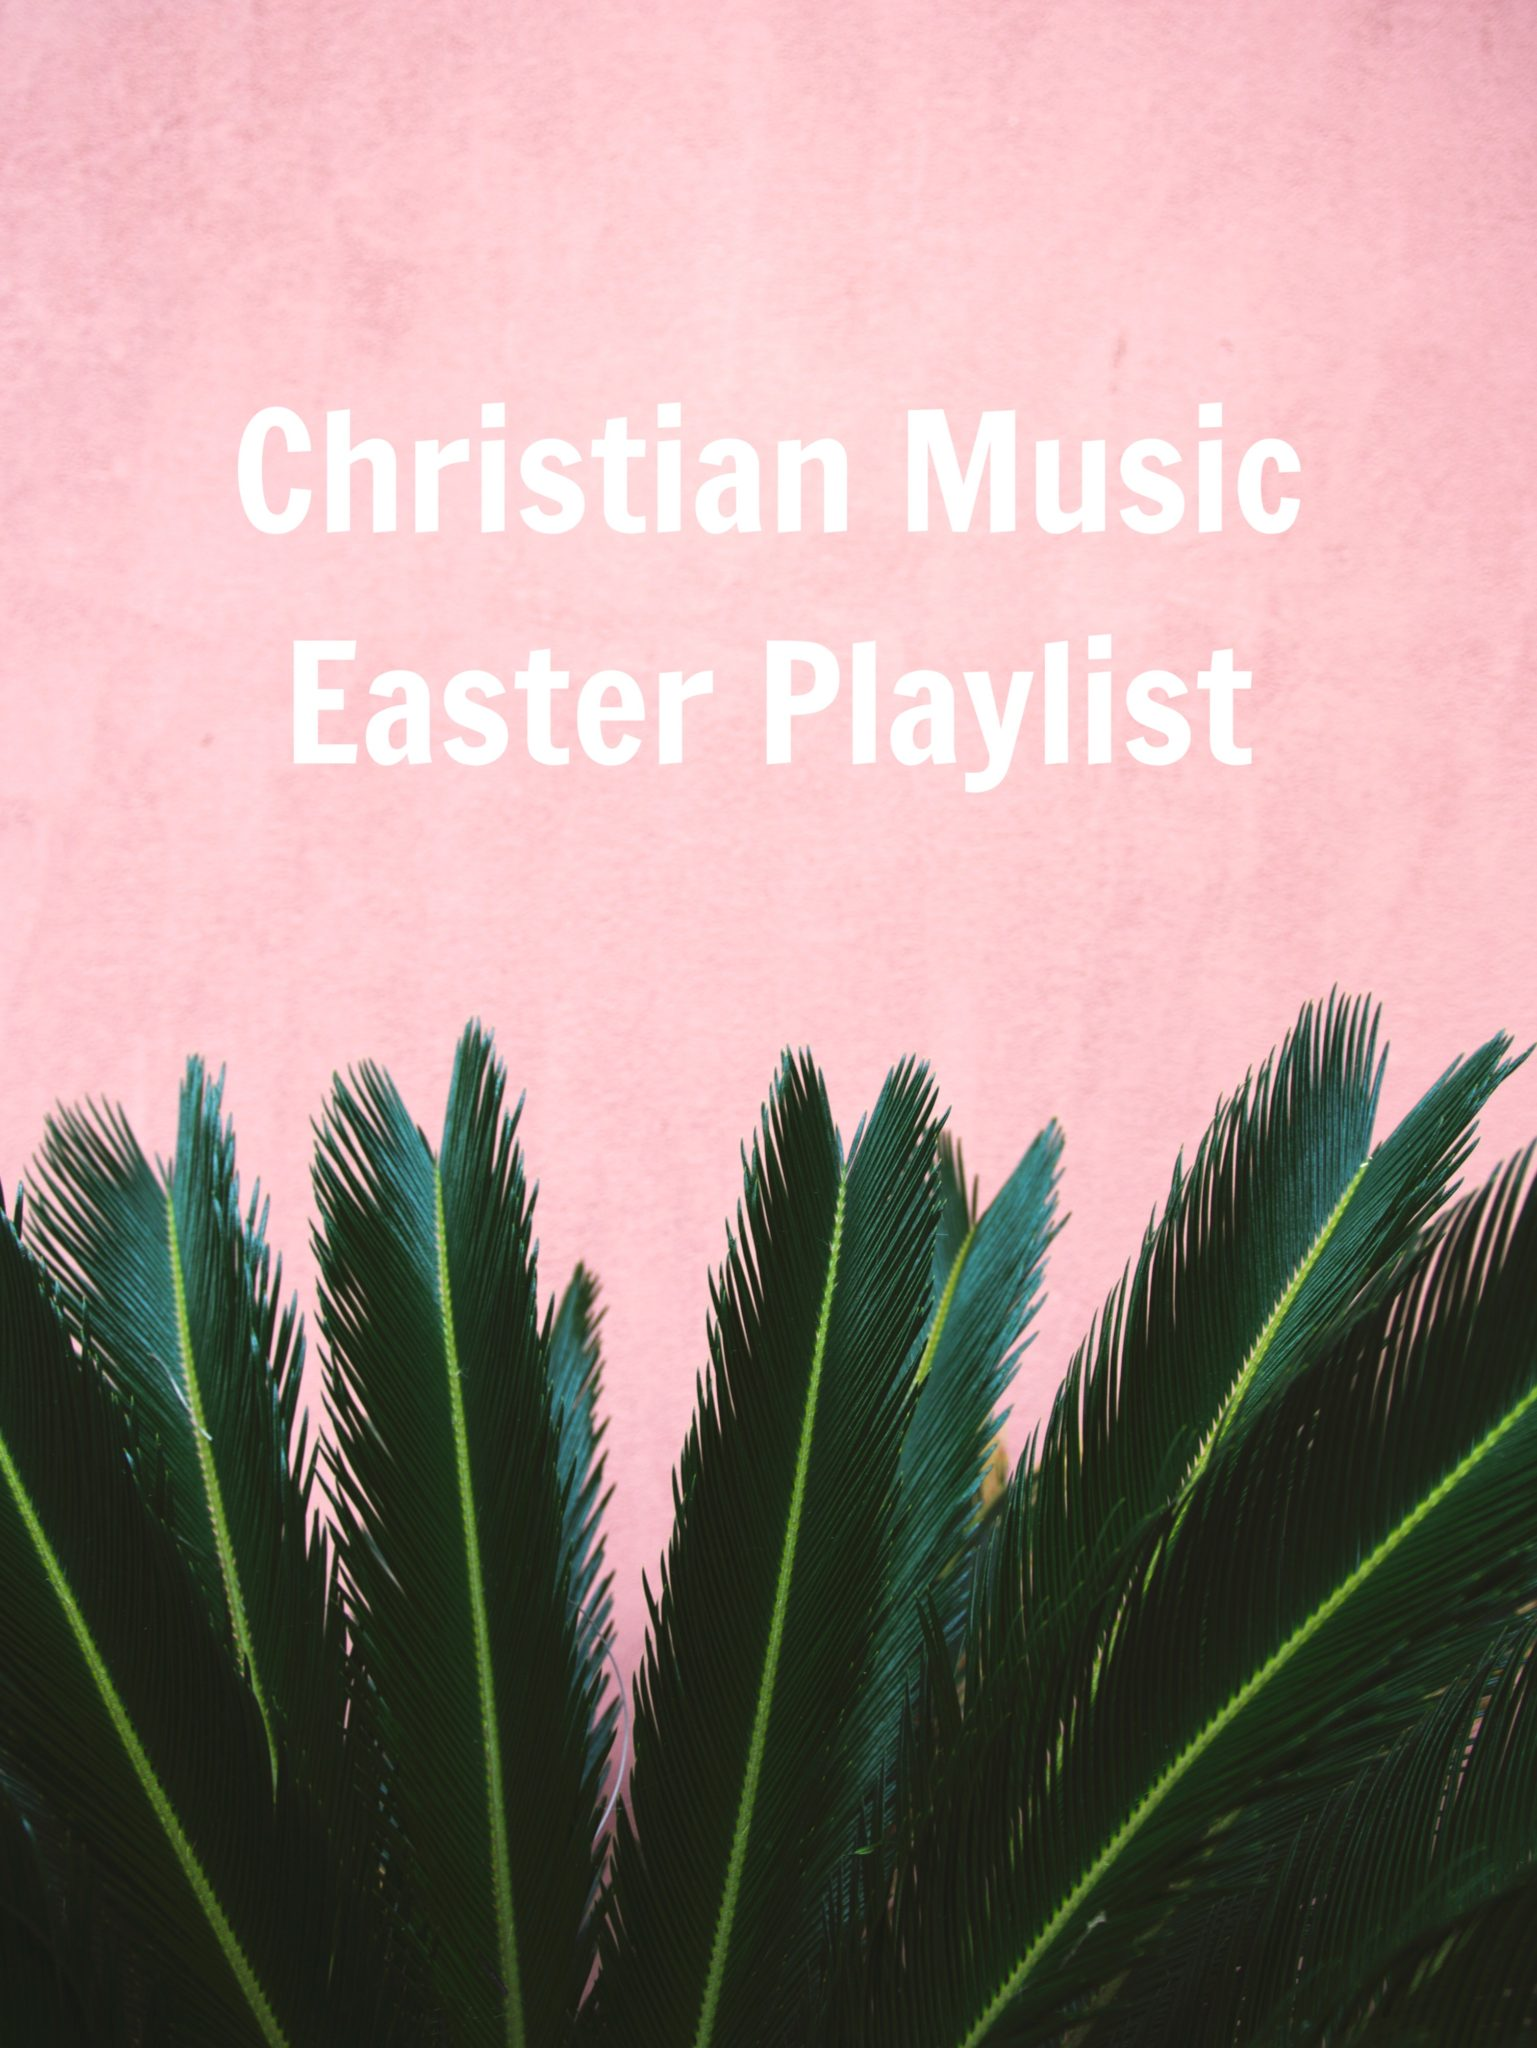 christian music easter playlist, music to play for easter on allweareblog.com